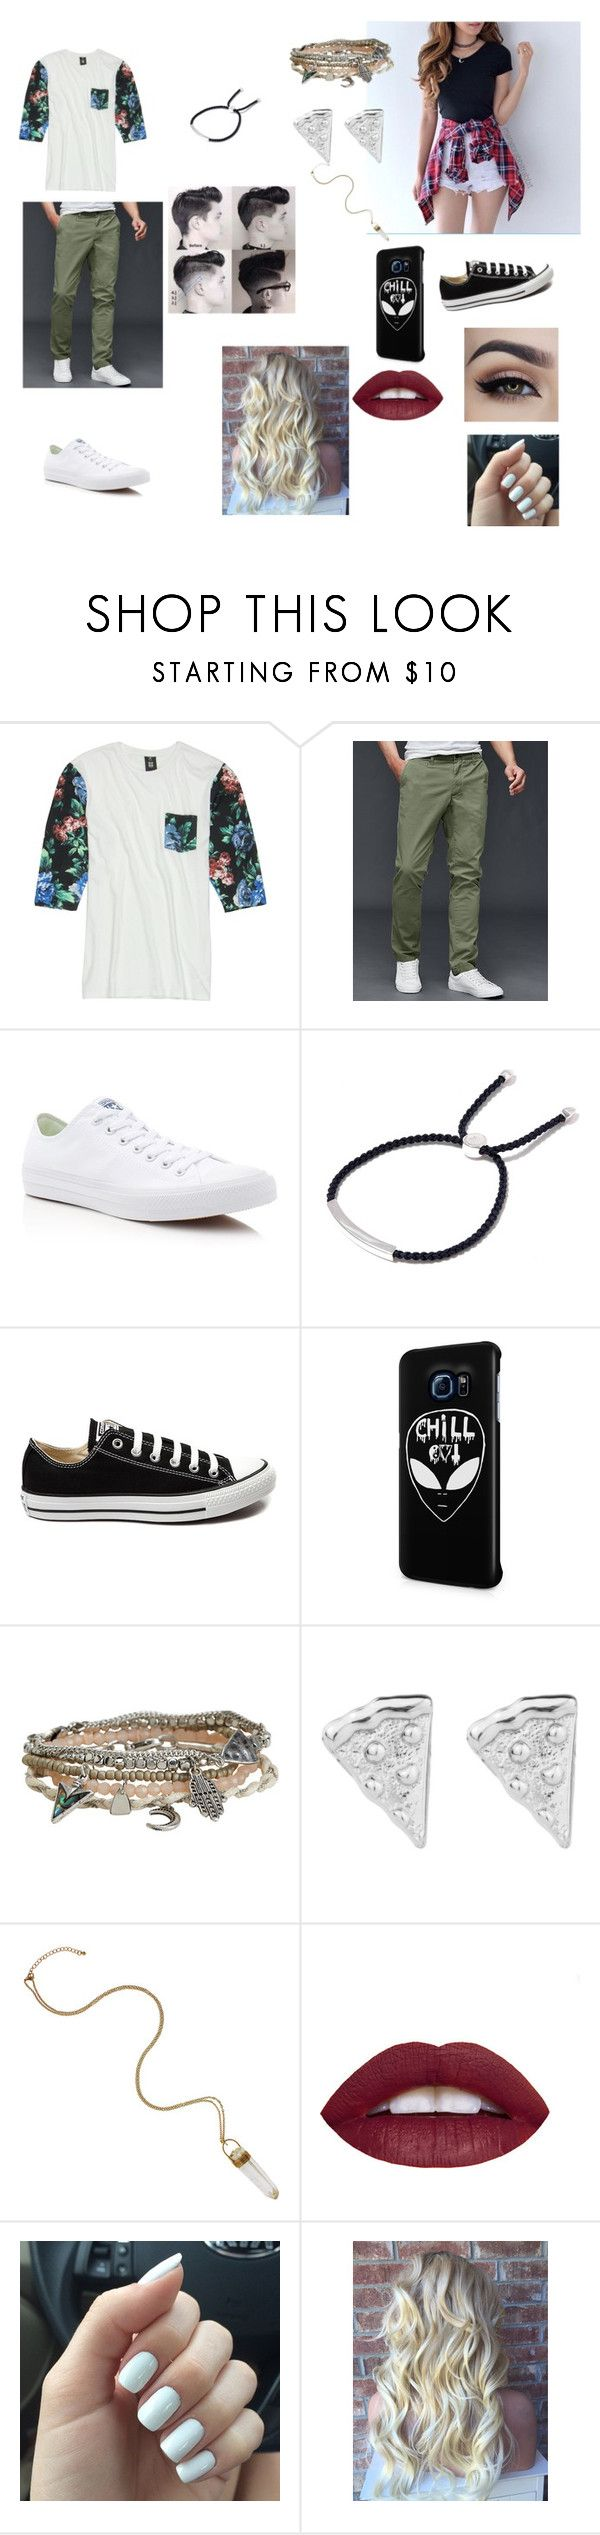 """""""My boyfriend and I be like"""" by carlyfaithh ❤ liked on Polyvore featuring Insight 51, Gap, Converse, Monica Vinader, Samsung and Aéropostale"""